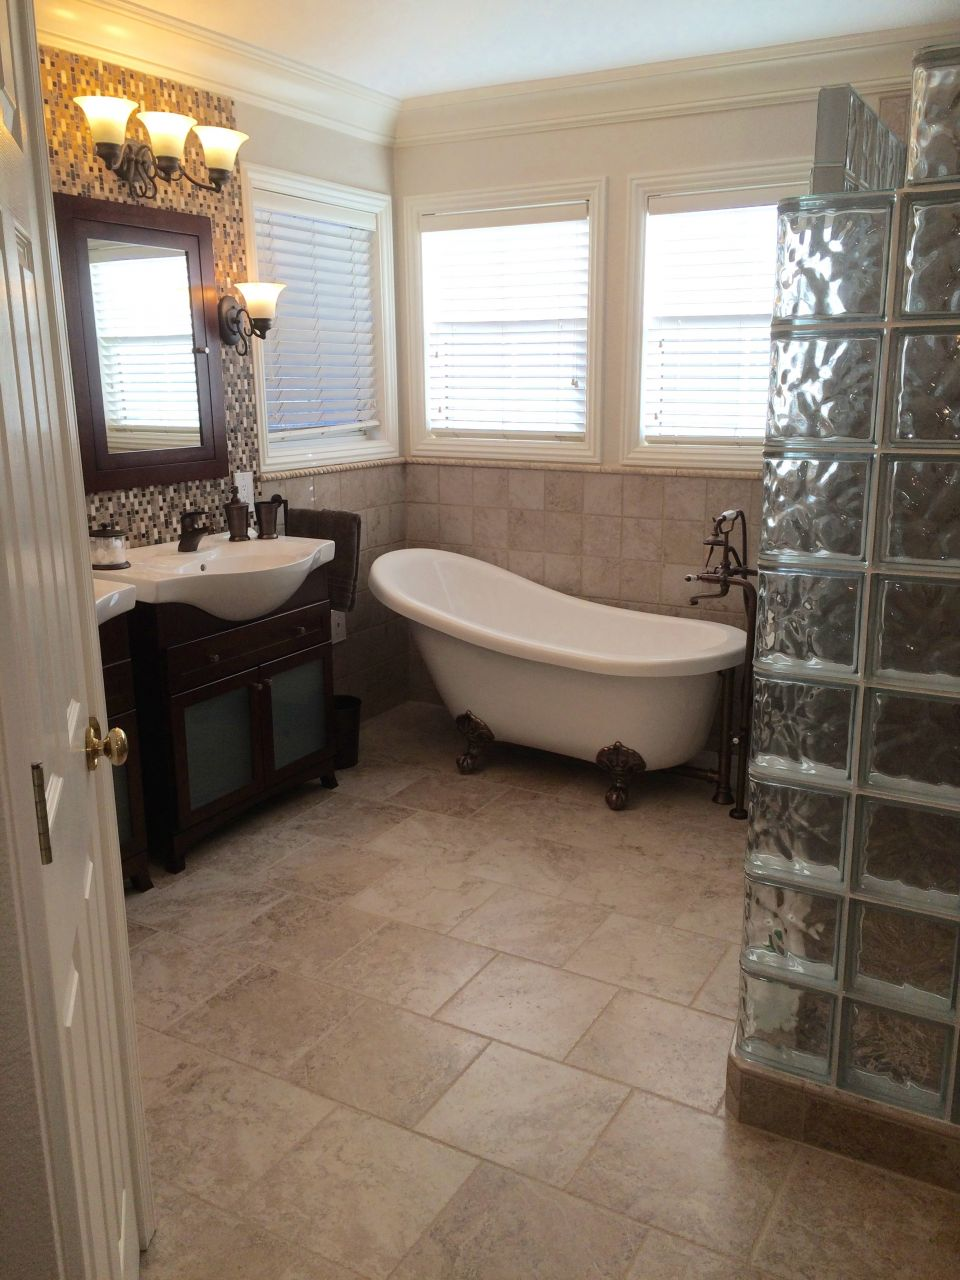 5 out of the box remodeling tips for a master bathroom in for Master bathroom remodel